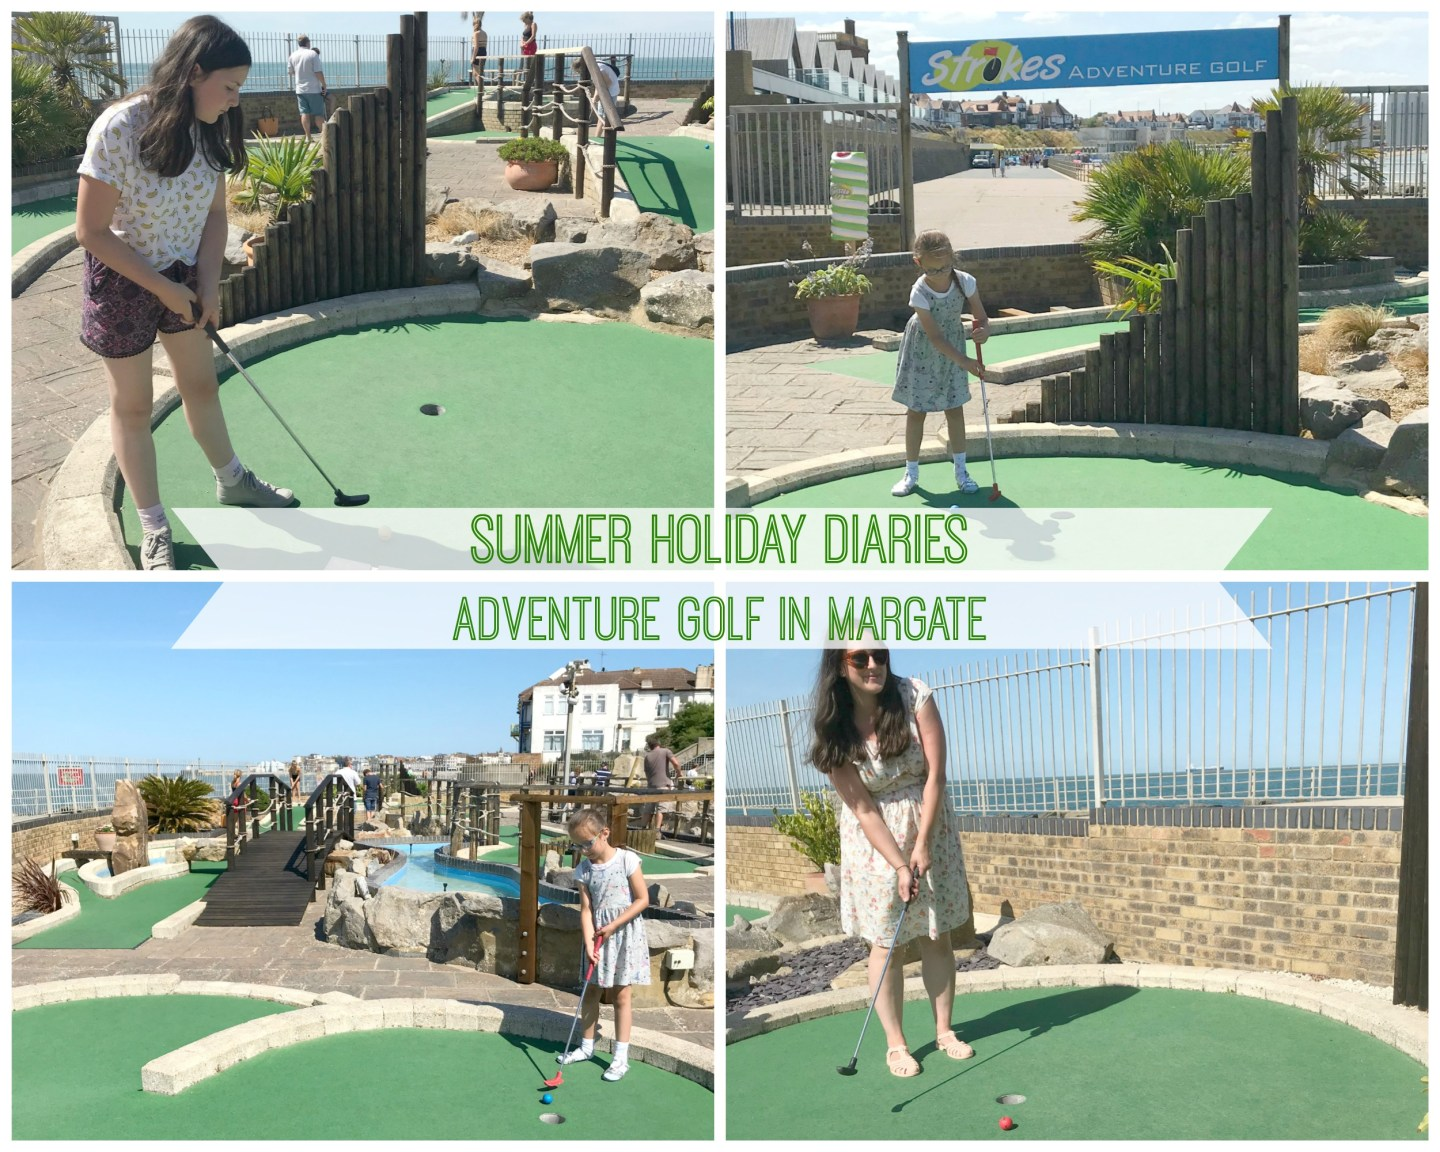 Summer Holiday Diaries – Adventure Golf In Margate